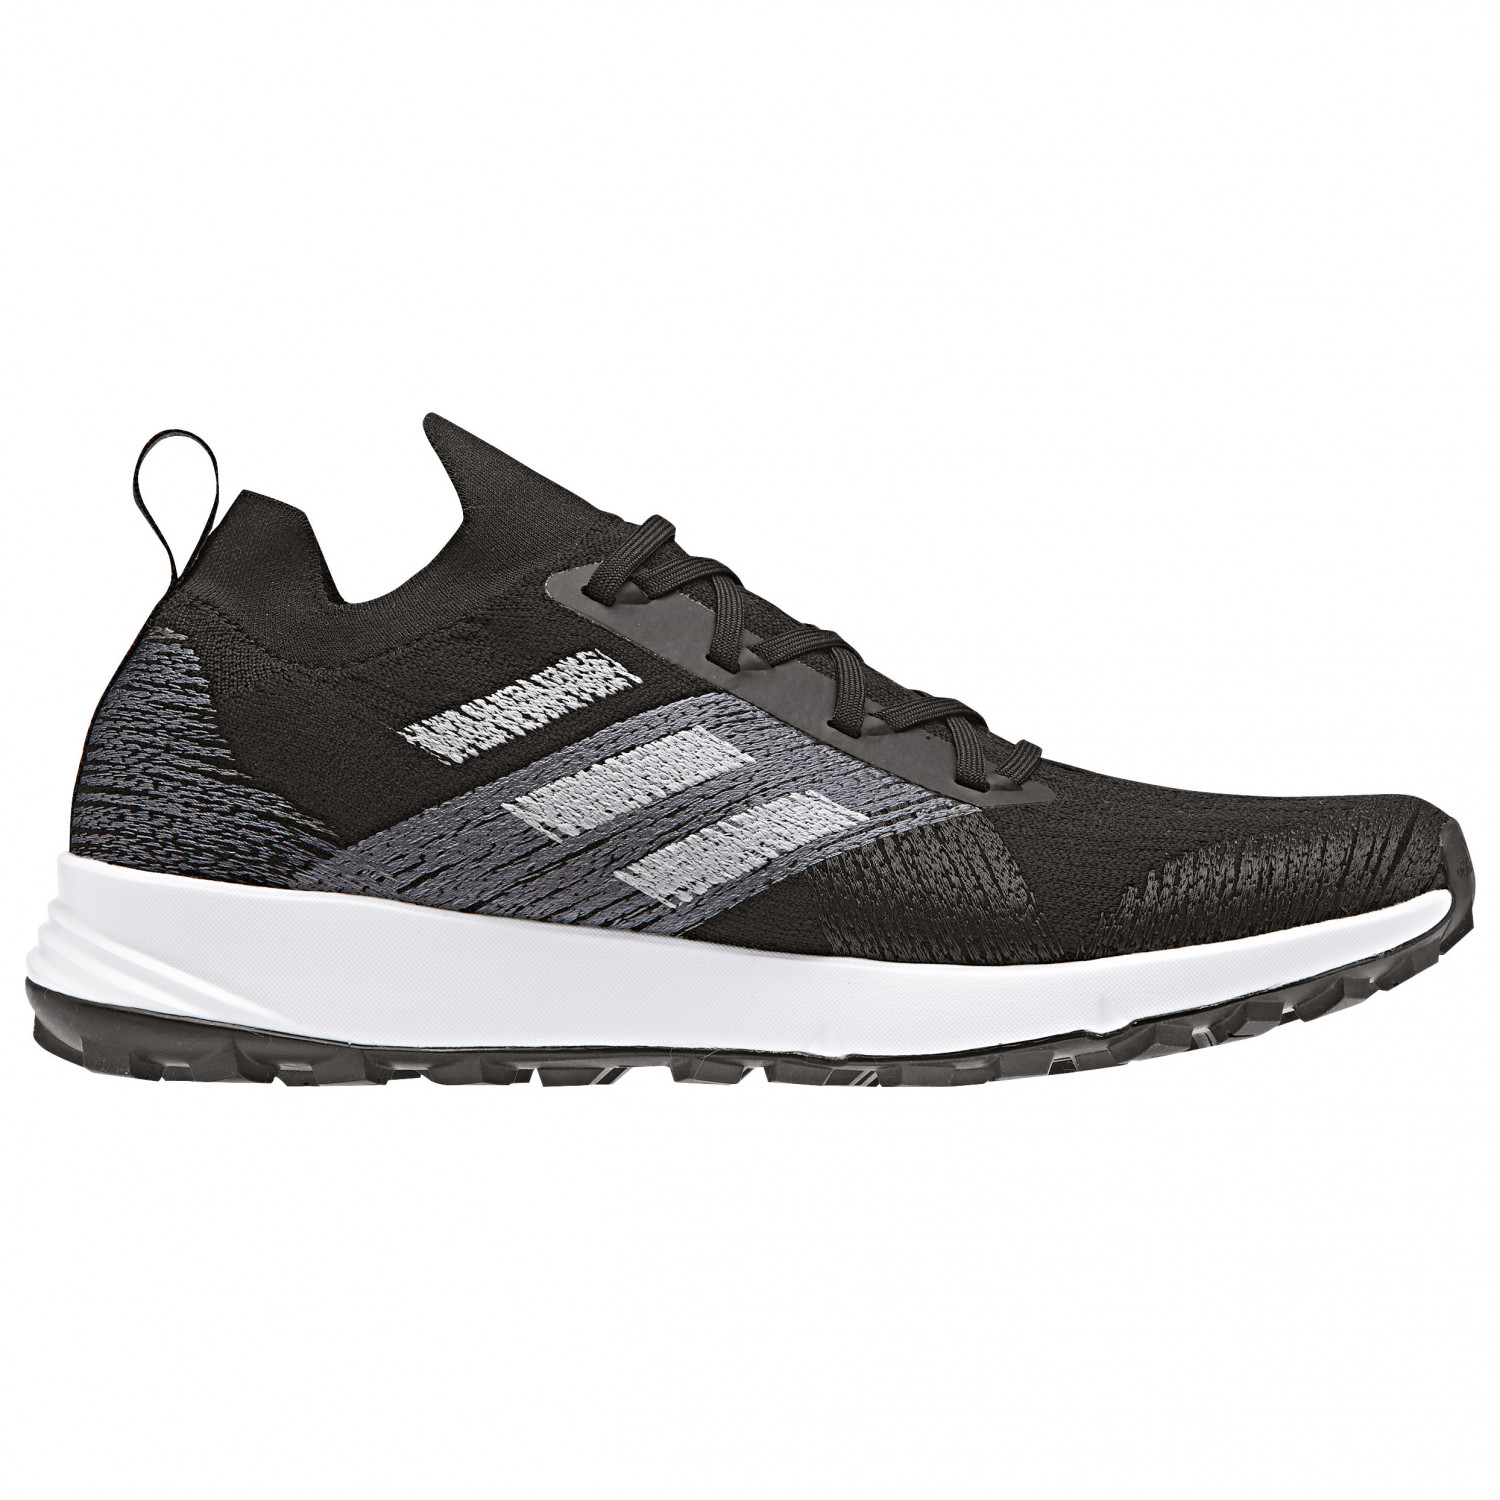 ad82260026bfd3 Adidas Terrex Two Parley - Trail running shoes Men s